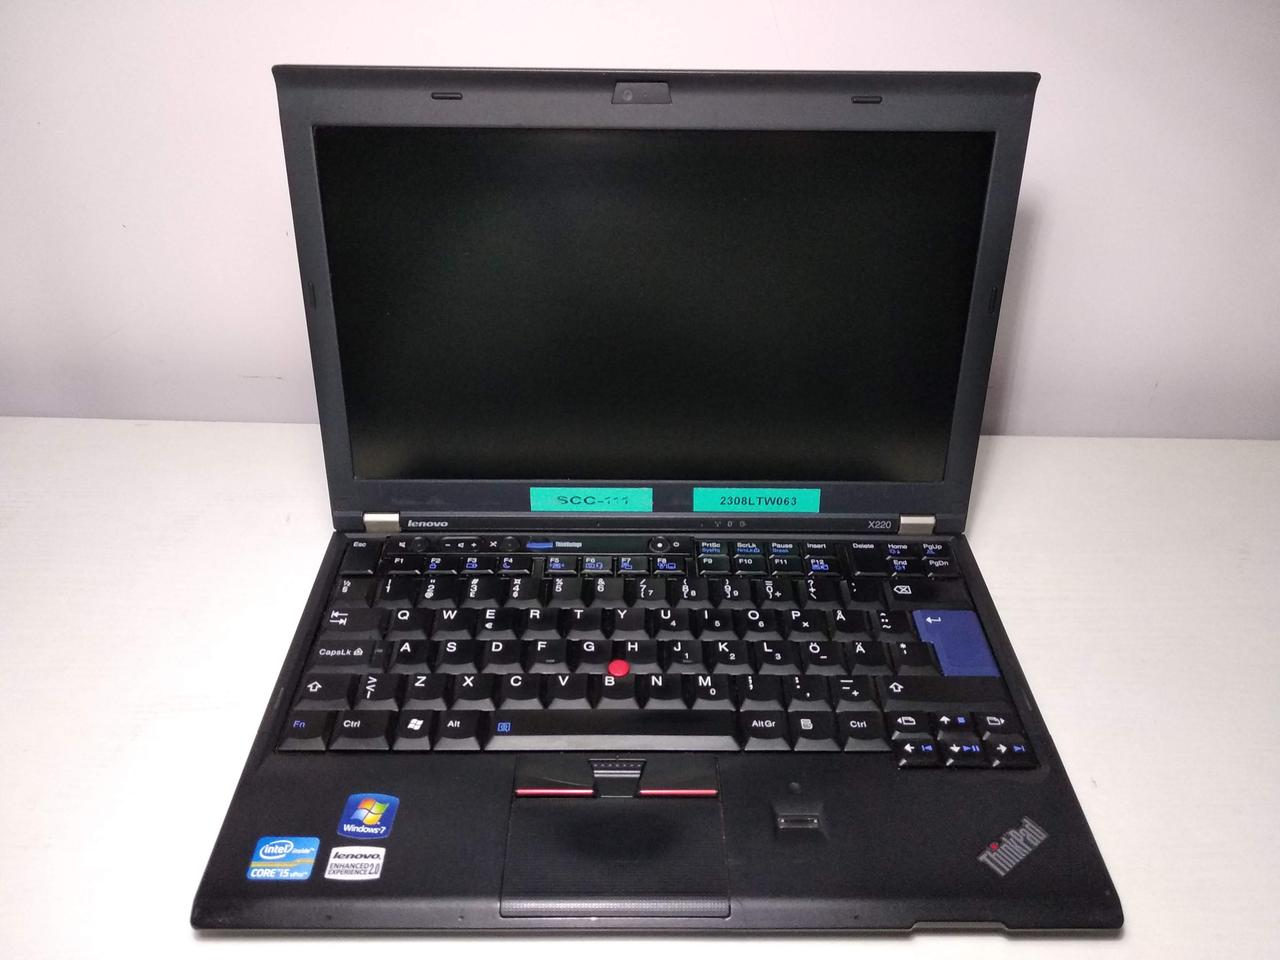 "Ноутбук Lenovo ThinkPad X220 Intel Core i5-2520M 3.2GHz/4Гб/12.5""/3G модем/GPS/HD Graphics 3000"